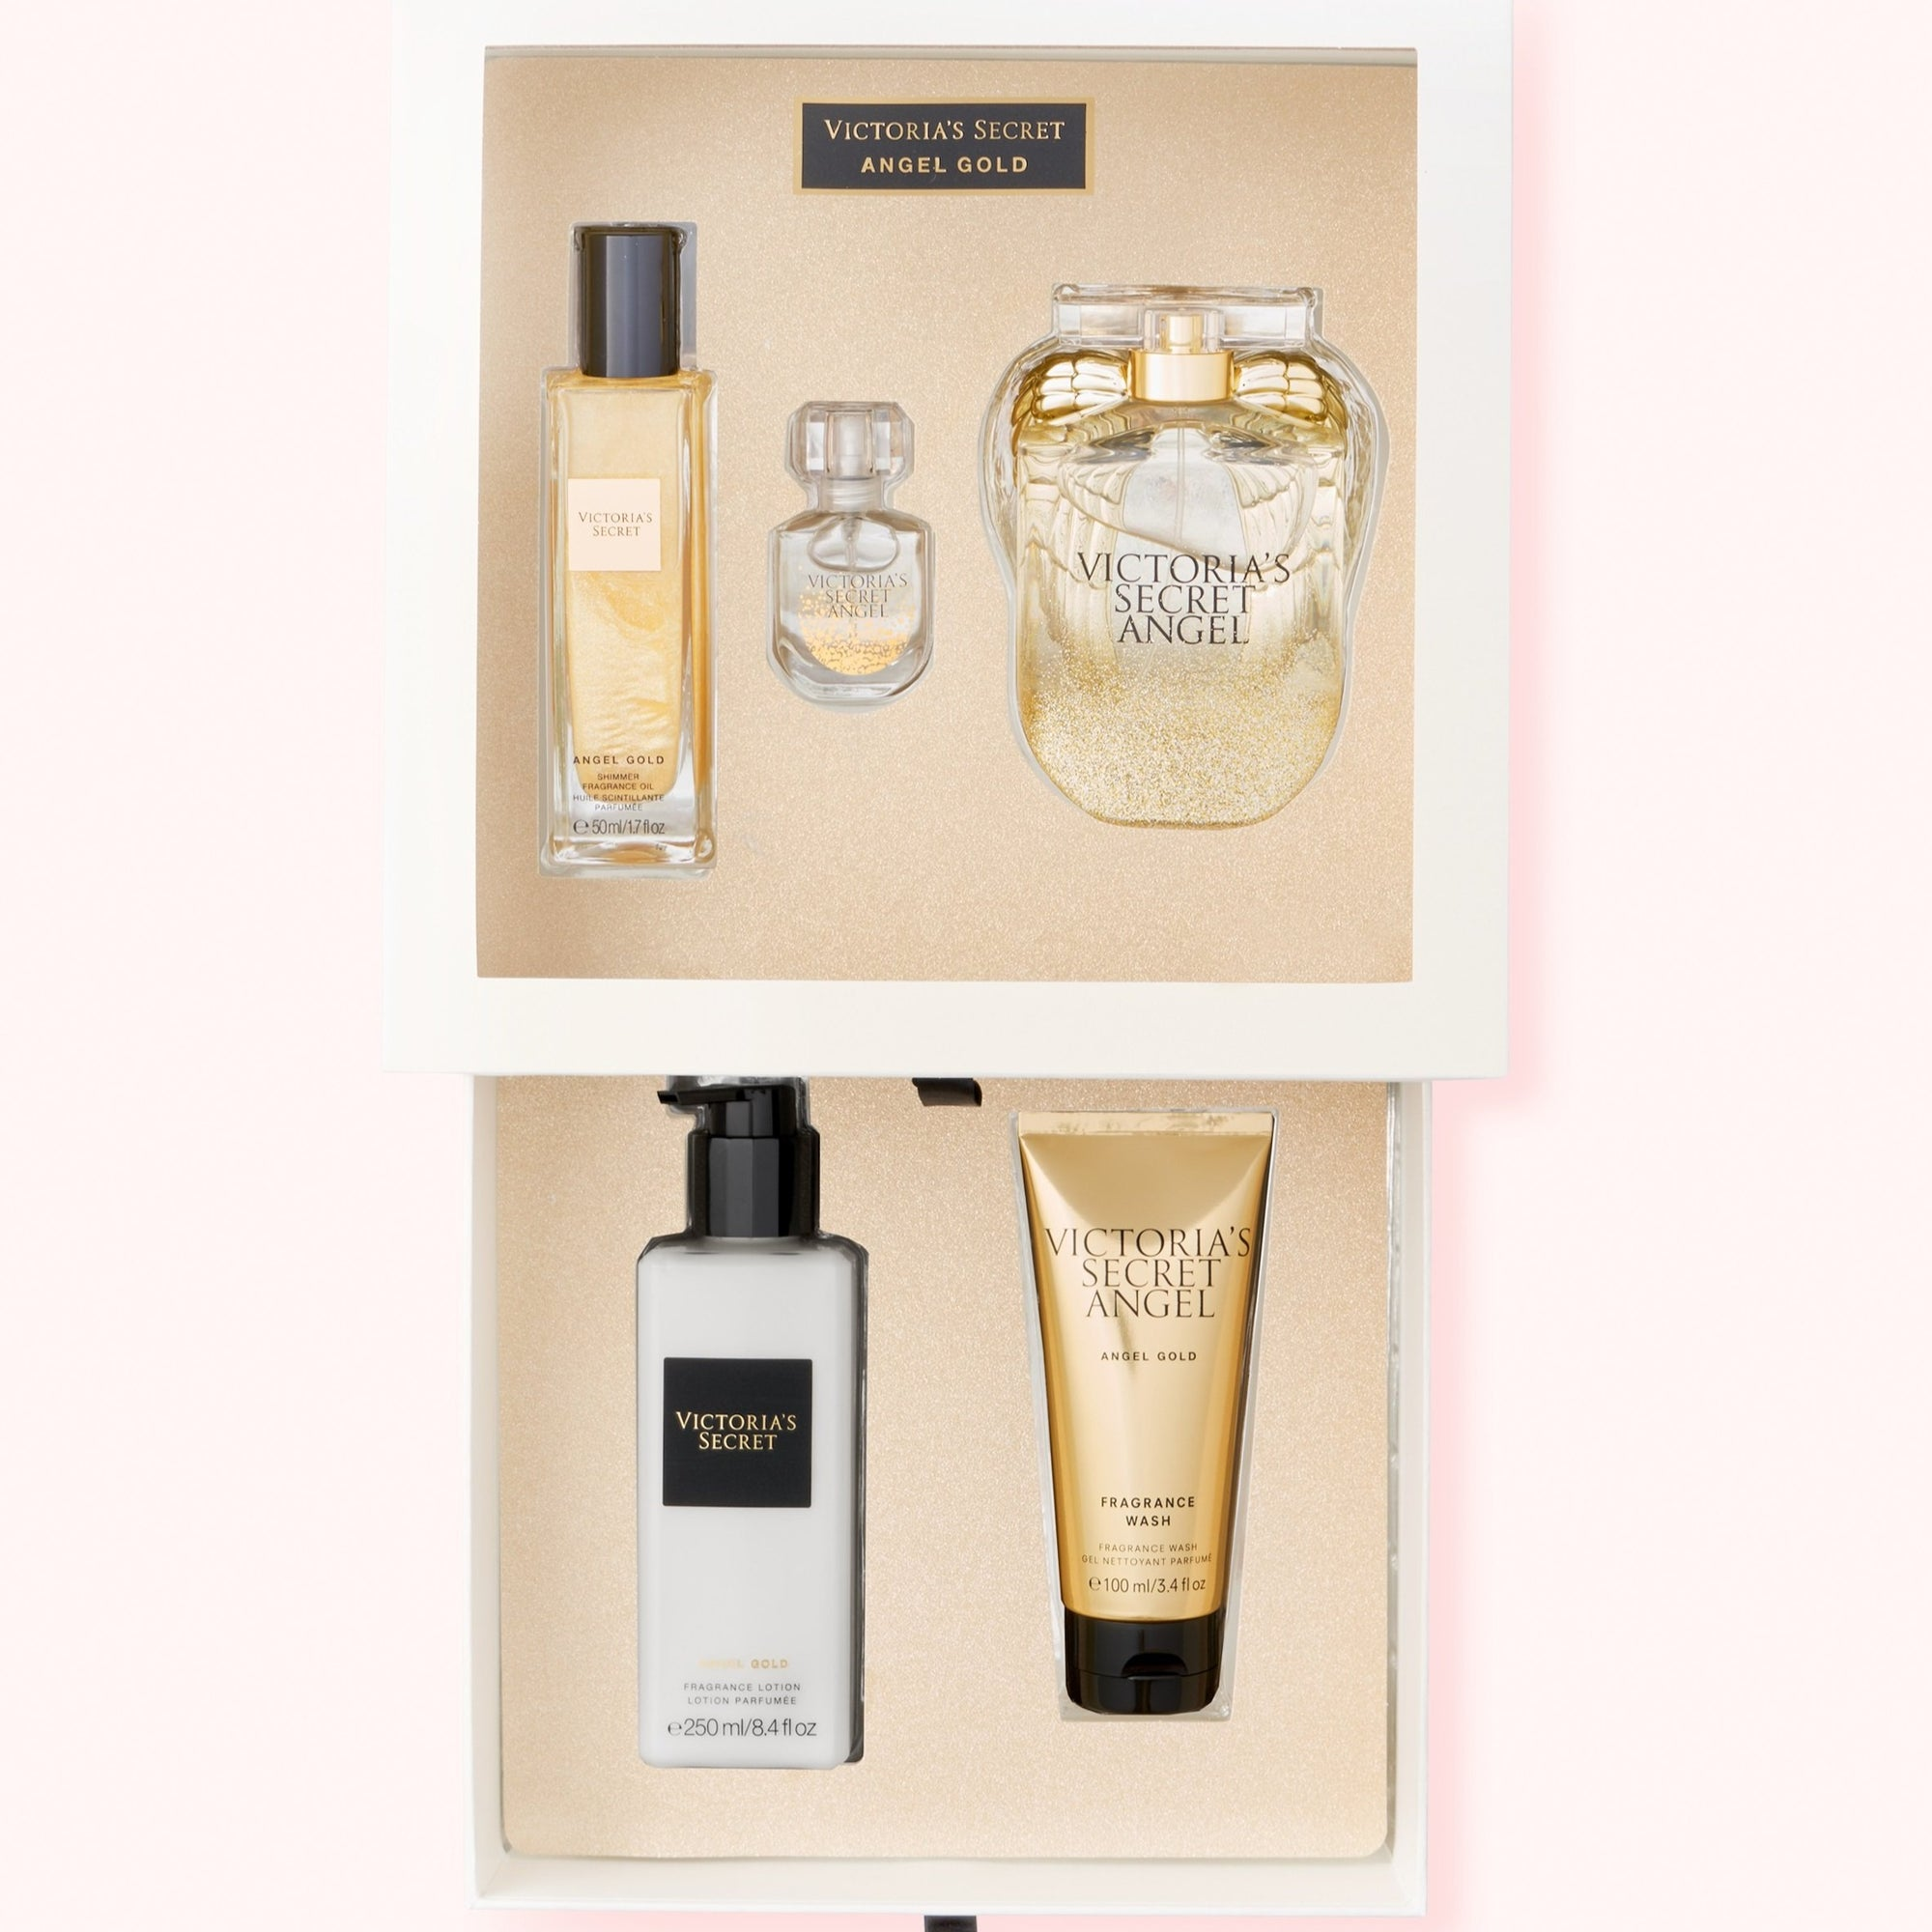 ANGEL GOLD EDP 100 ML + 7.5ML + BODY LOTION 250 ML + SHOWER GEL 100 + S/O 50 ML - VICTORIA'S SECRET